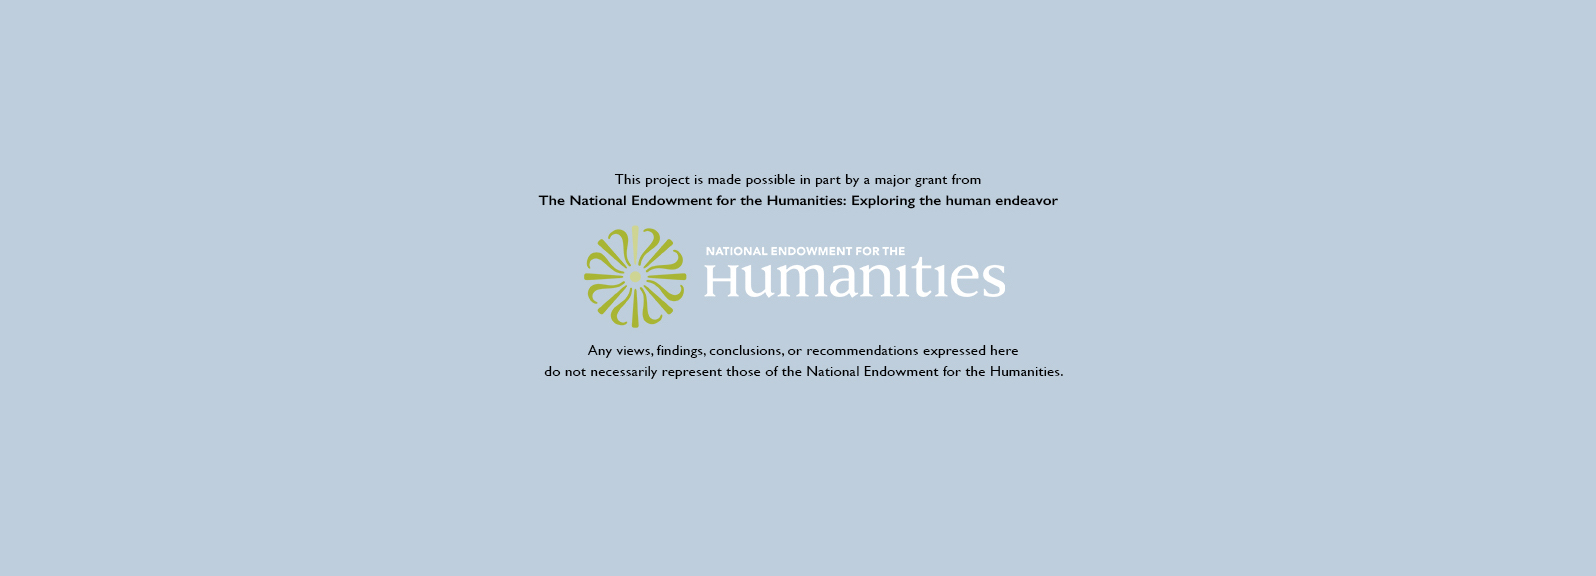 Acknowledgment of grant from National Endowment for the Humanities